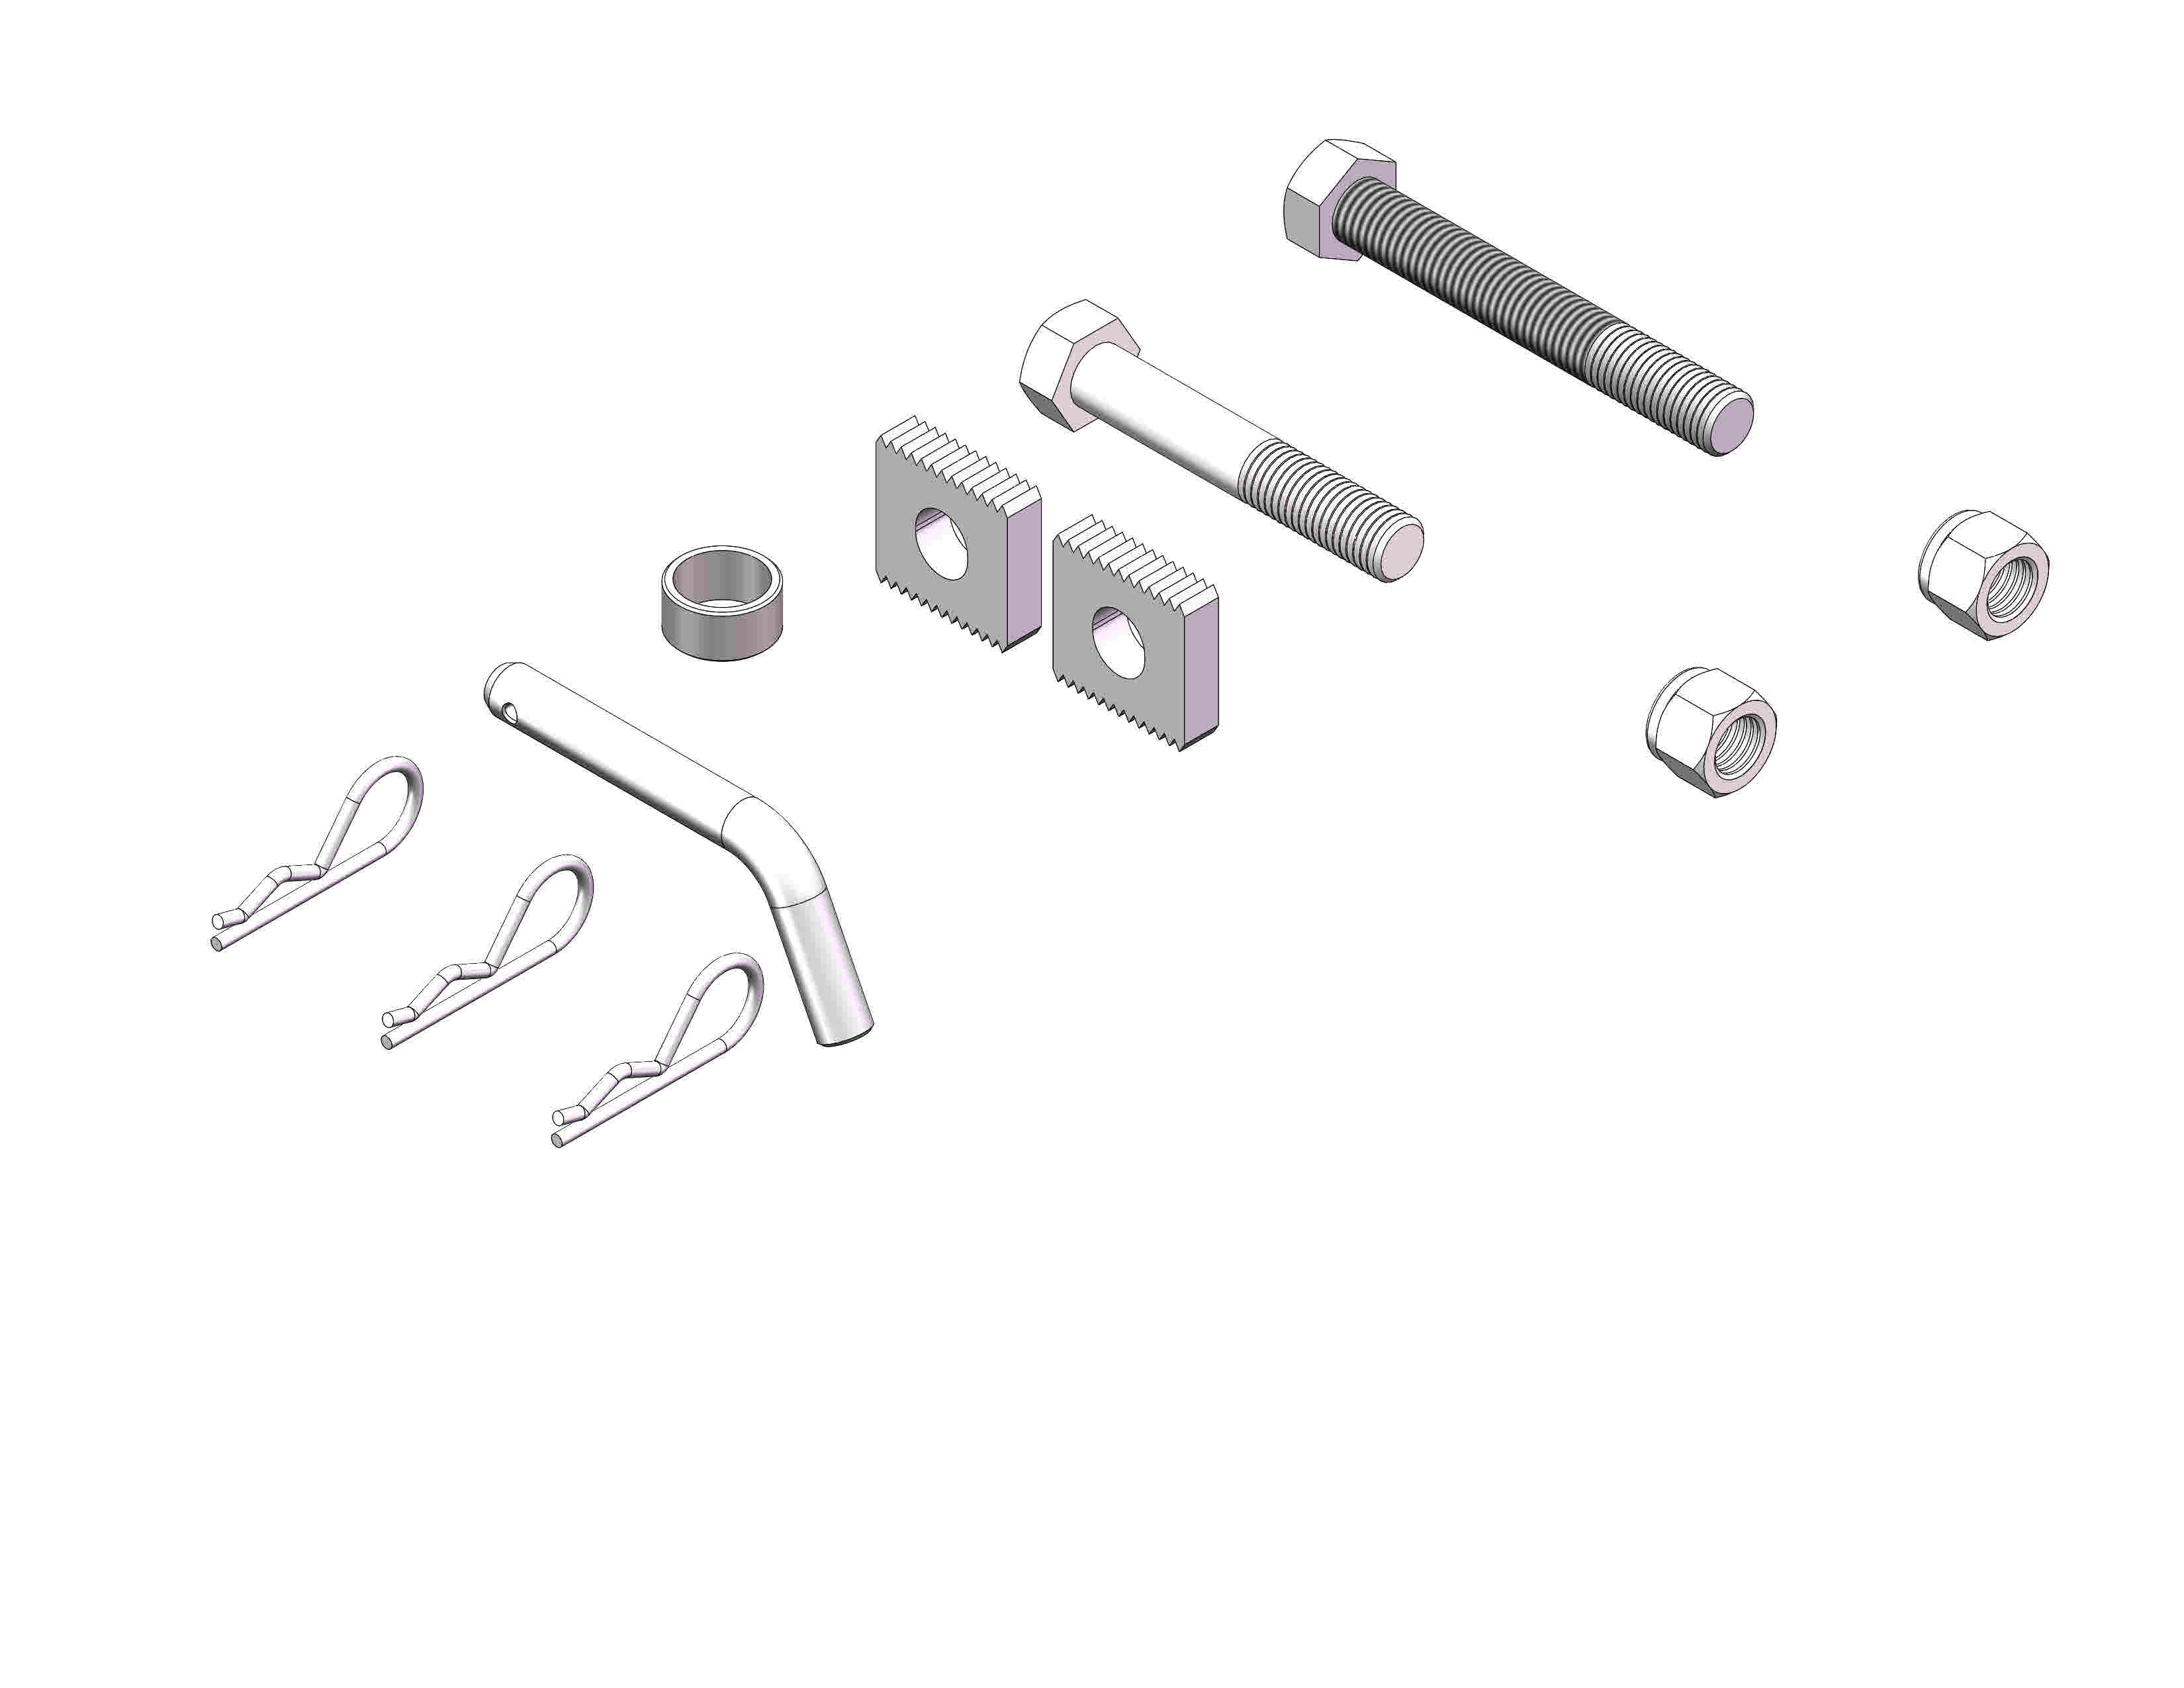 Husky Towing Weight Distribution Hitch Hardware